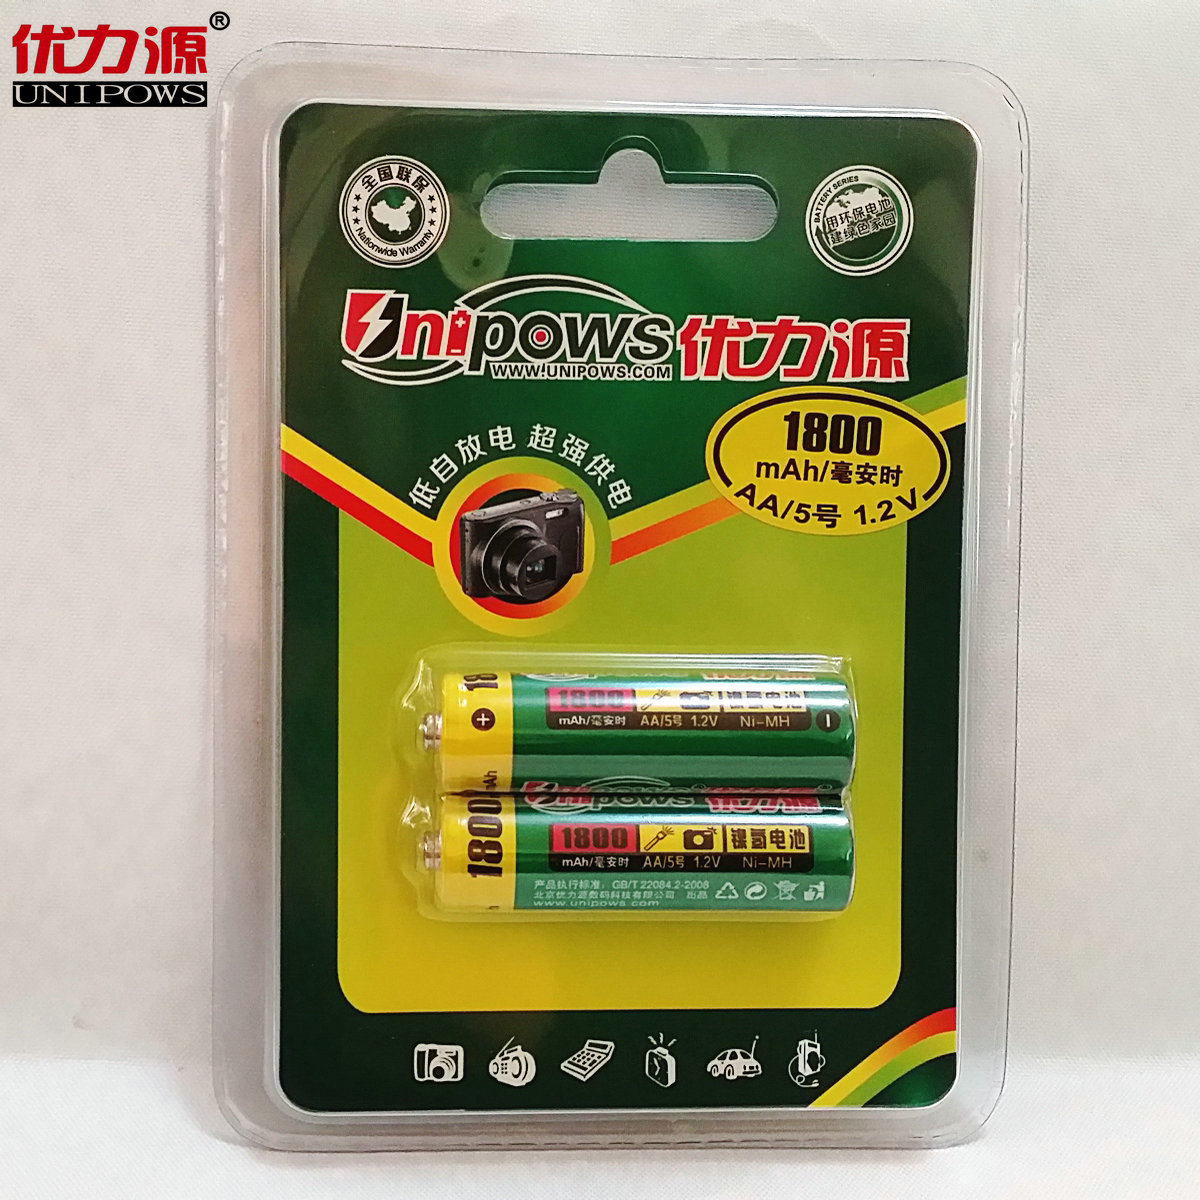 Excellent source of aa1800mah 5 polaroid rechargeable batteries on 5 rechargeable battery wireless mouse battery